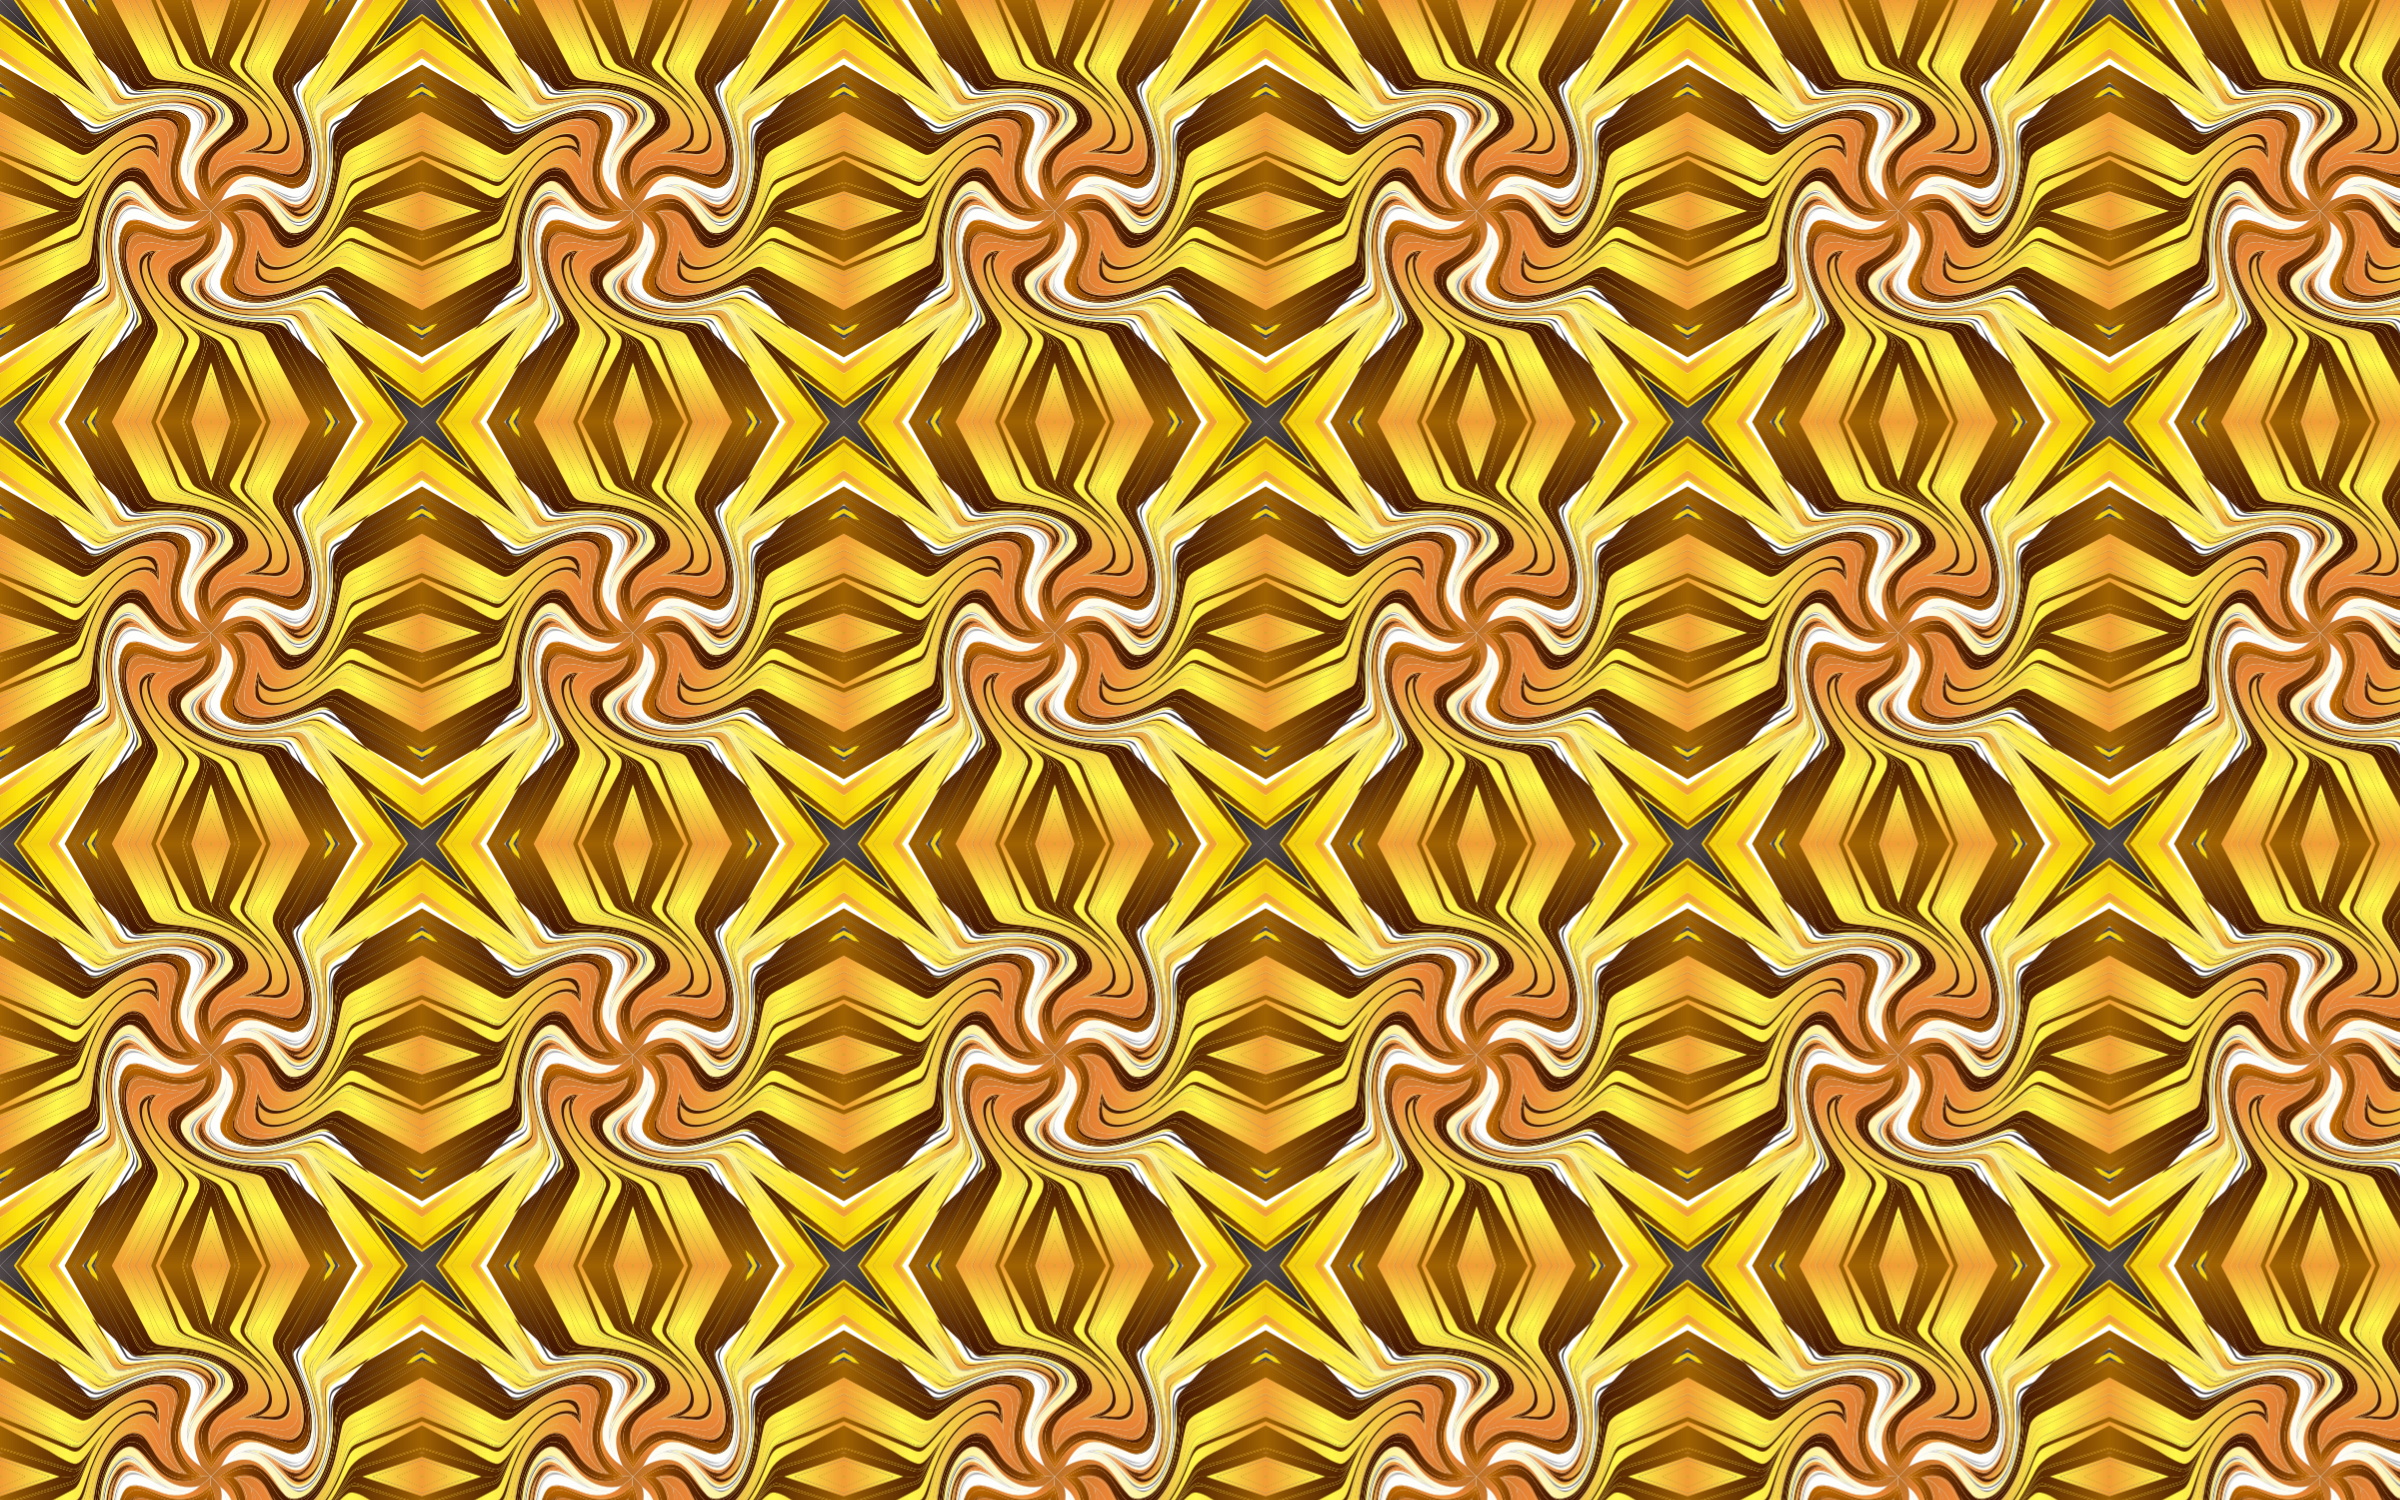 Seamless Pattern 121 by GDJ